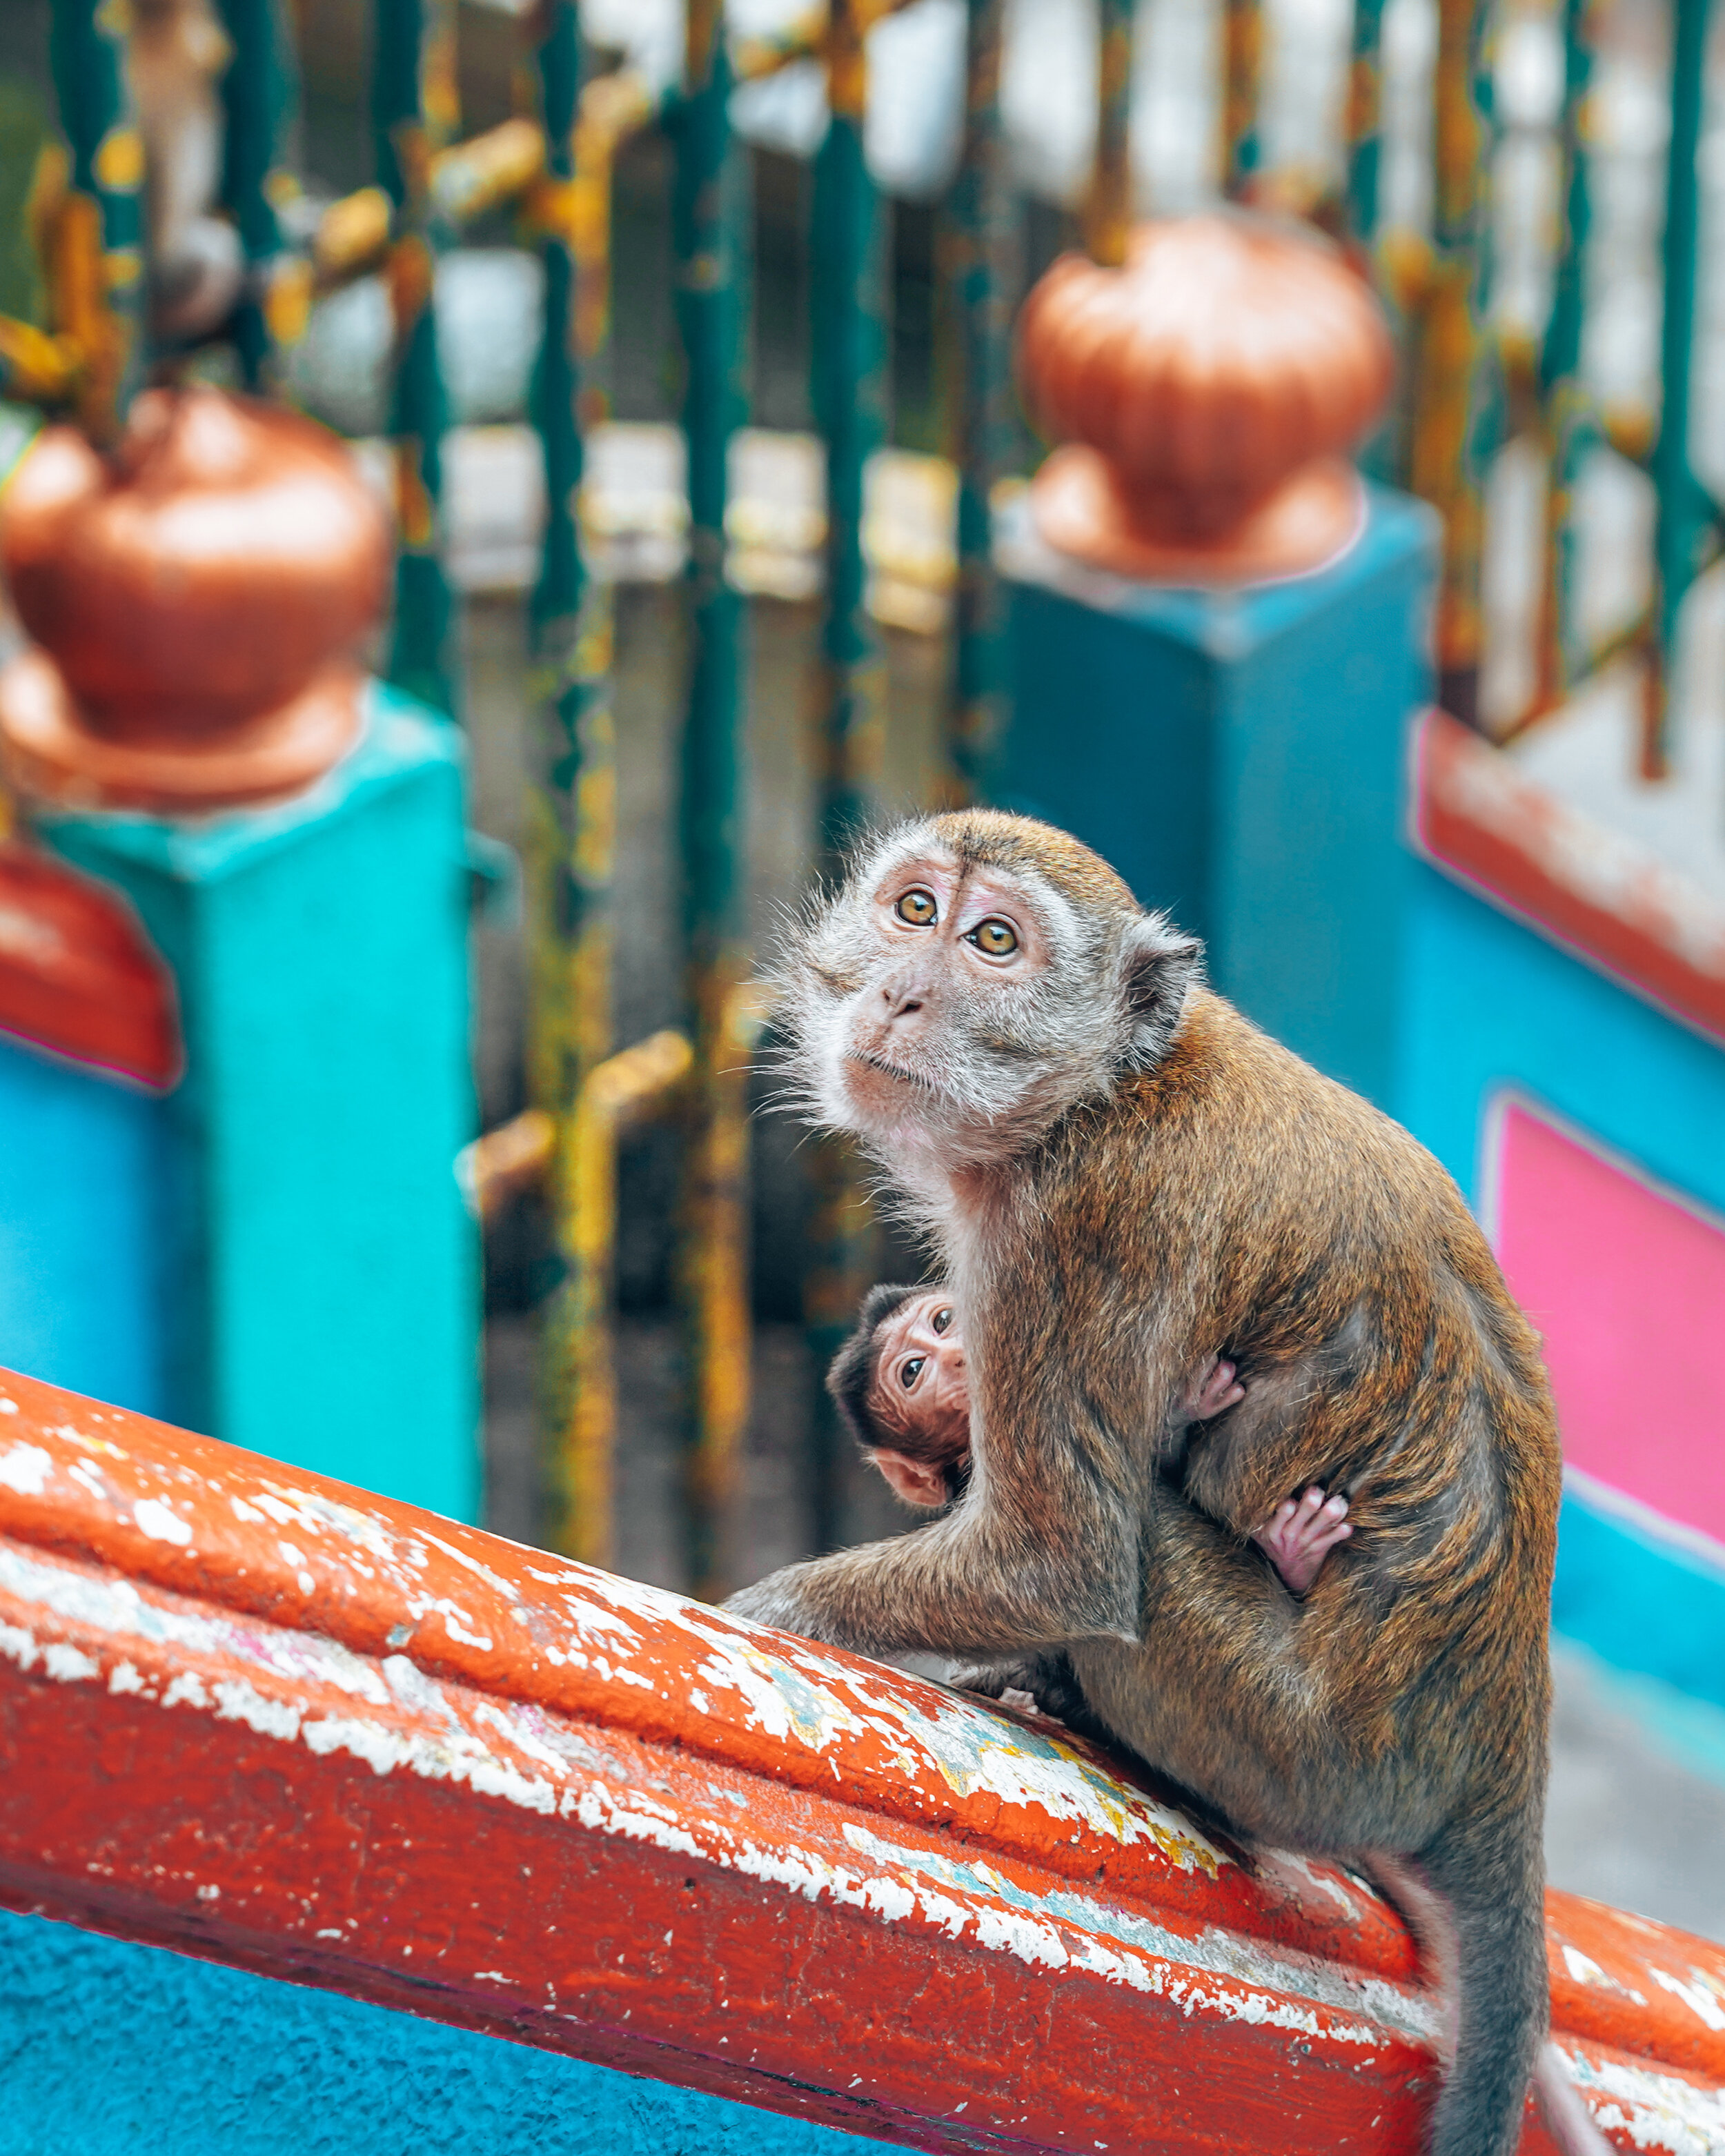 Best things to do in Kuala Lumpur - 3 day itinerary to KL - Batu Caves Monkeys